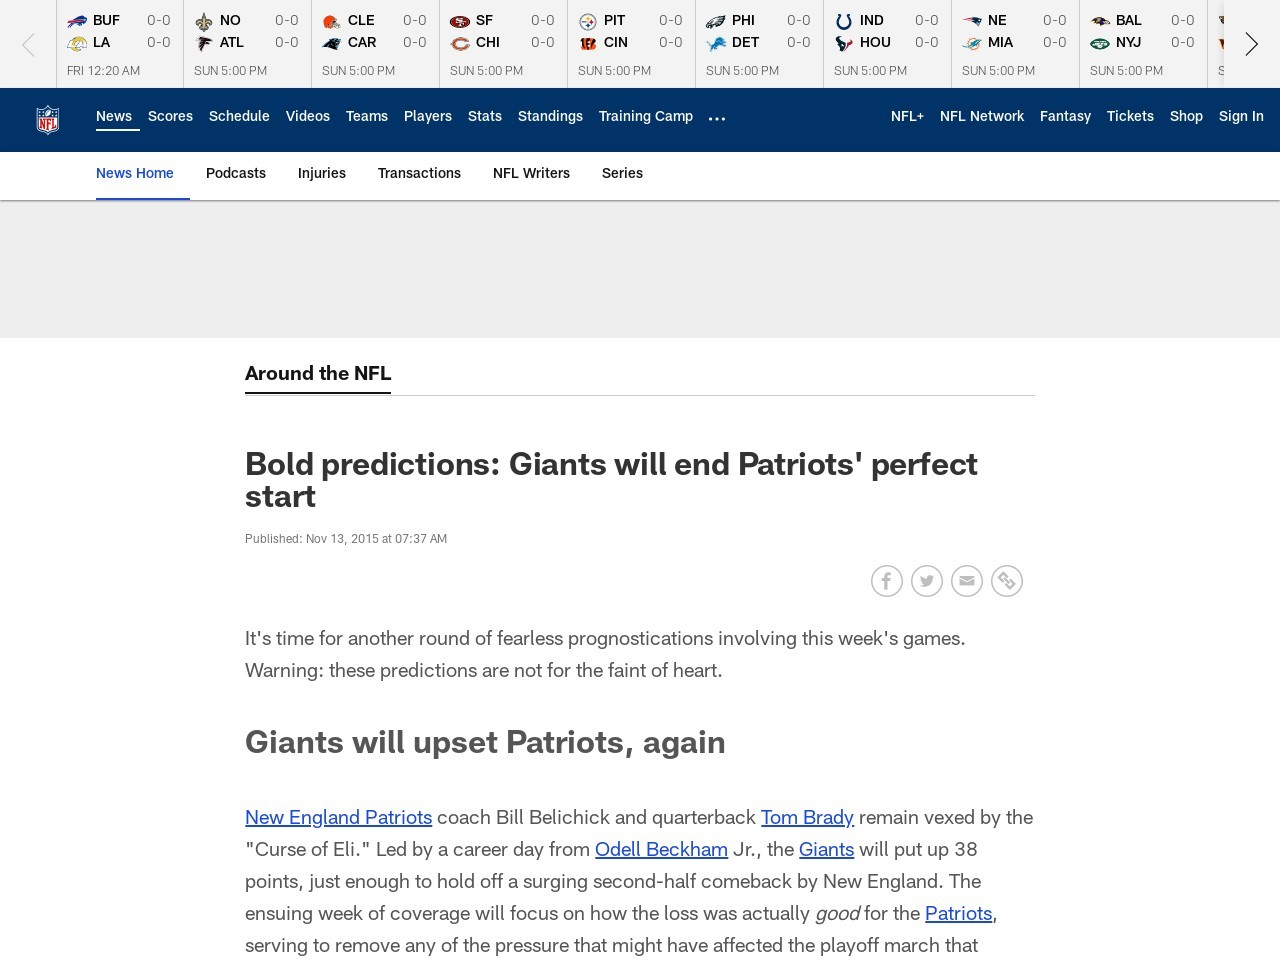 Bold predictions: Giants will end Patriots' perfect start